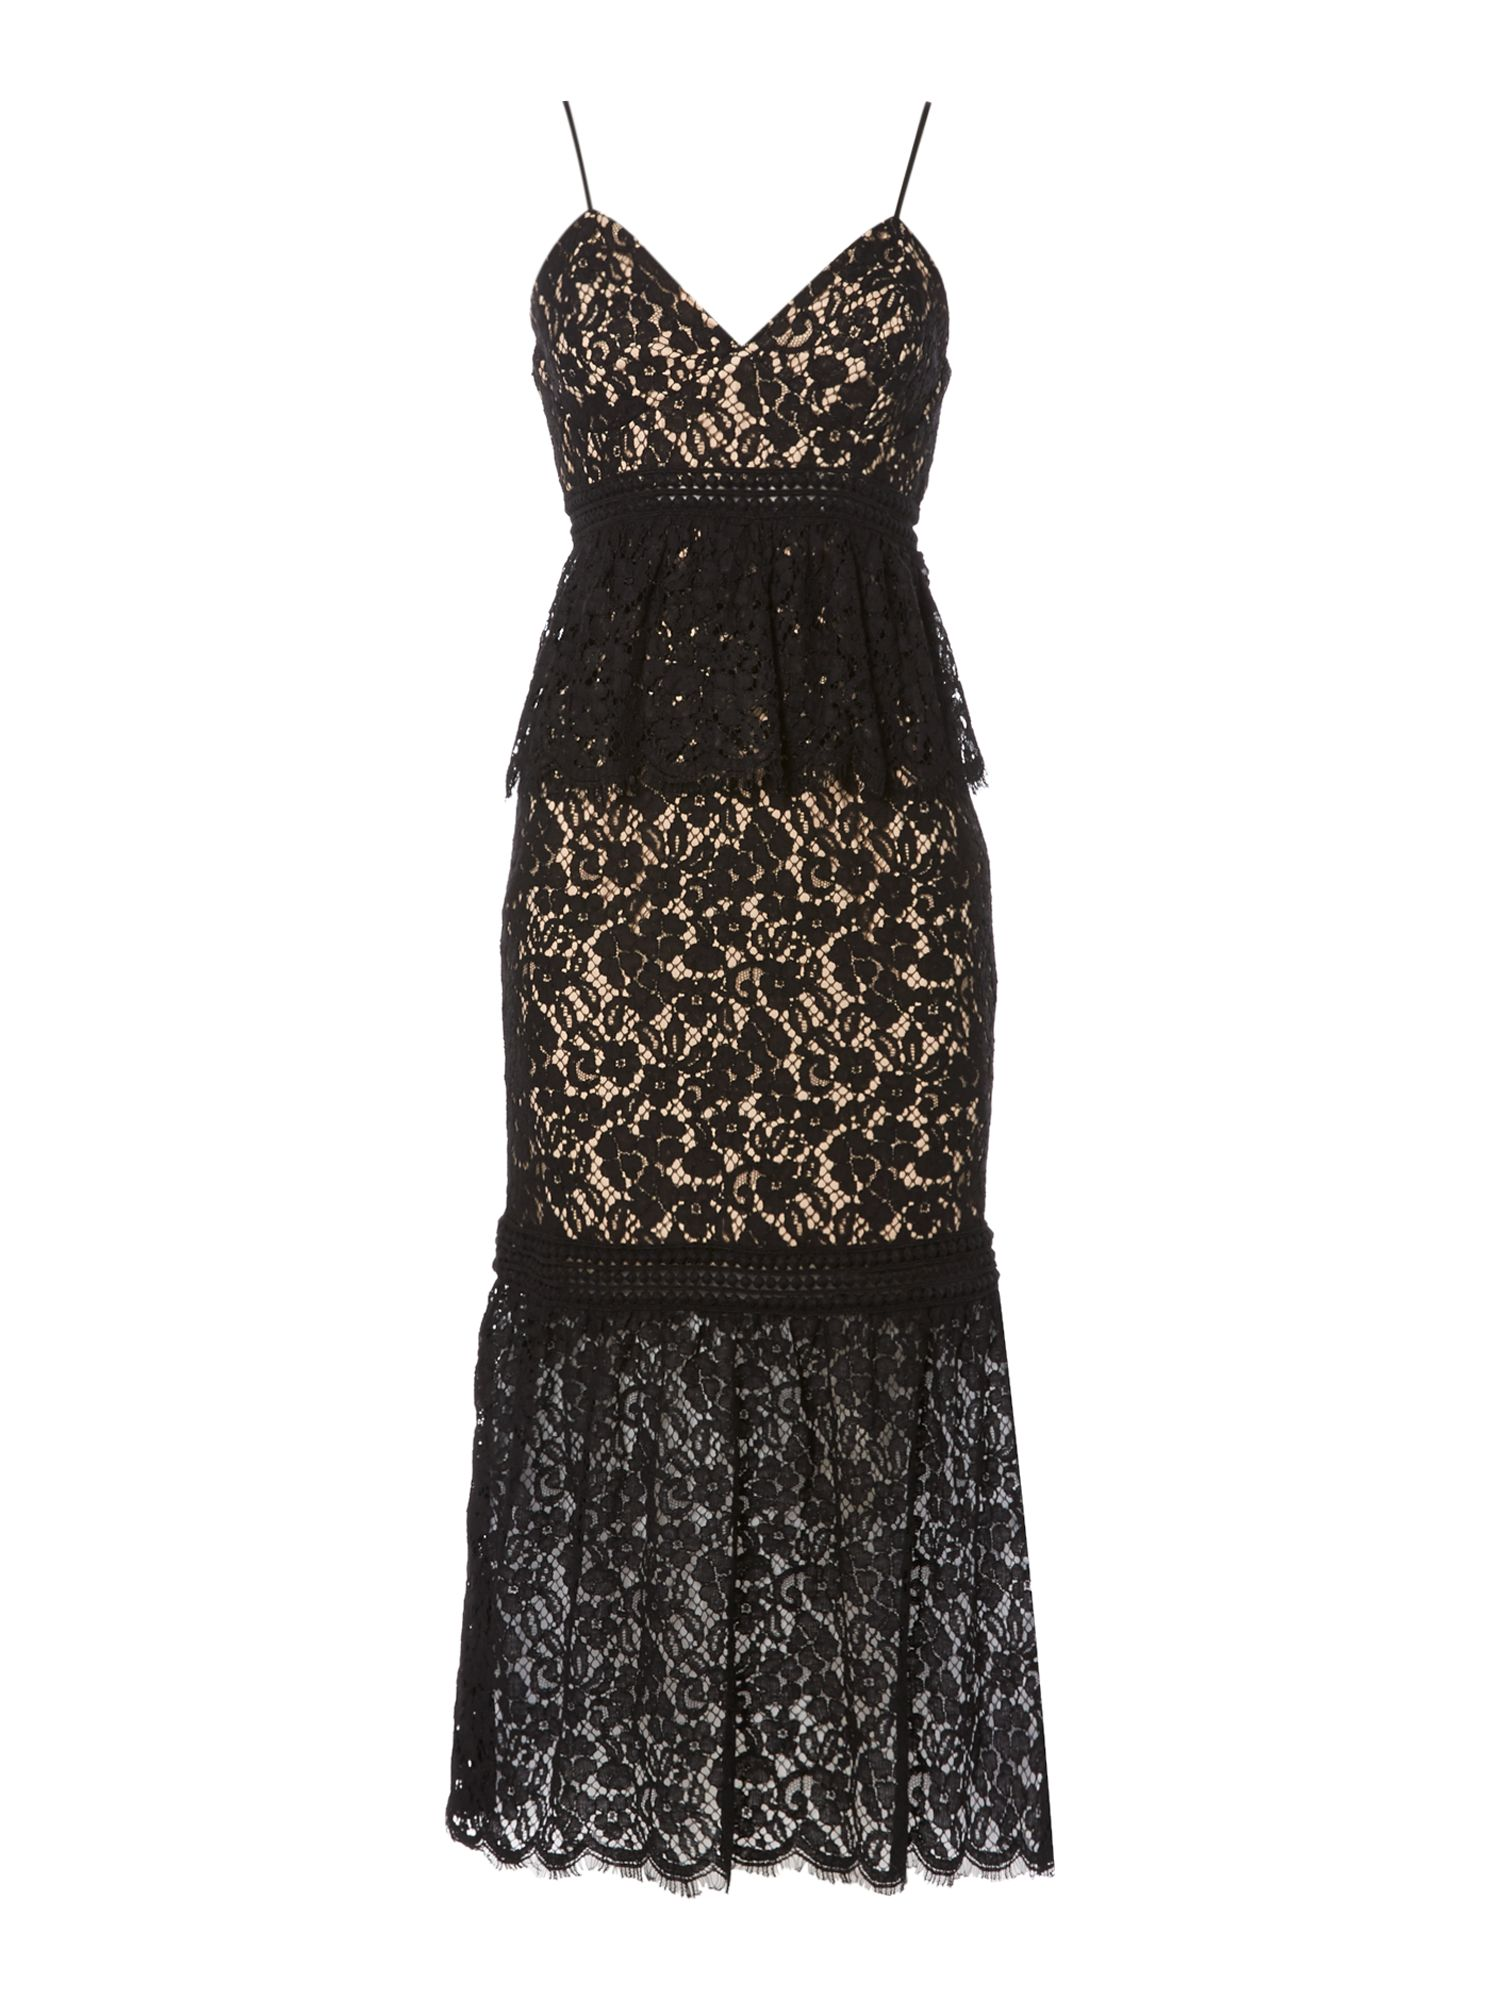 Bardot Sleeveless Lace Overlay Midi Dress, Black